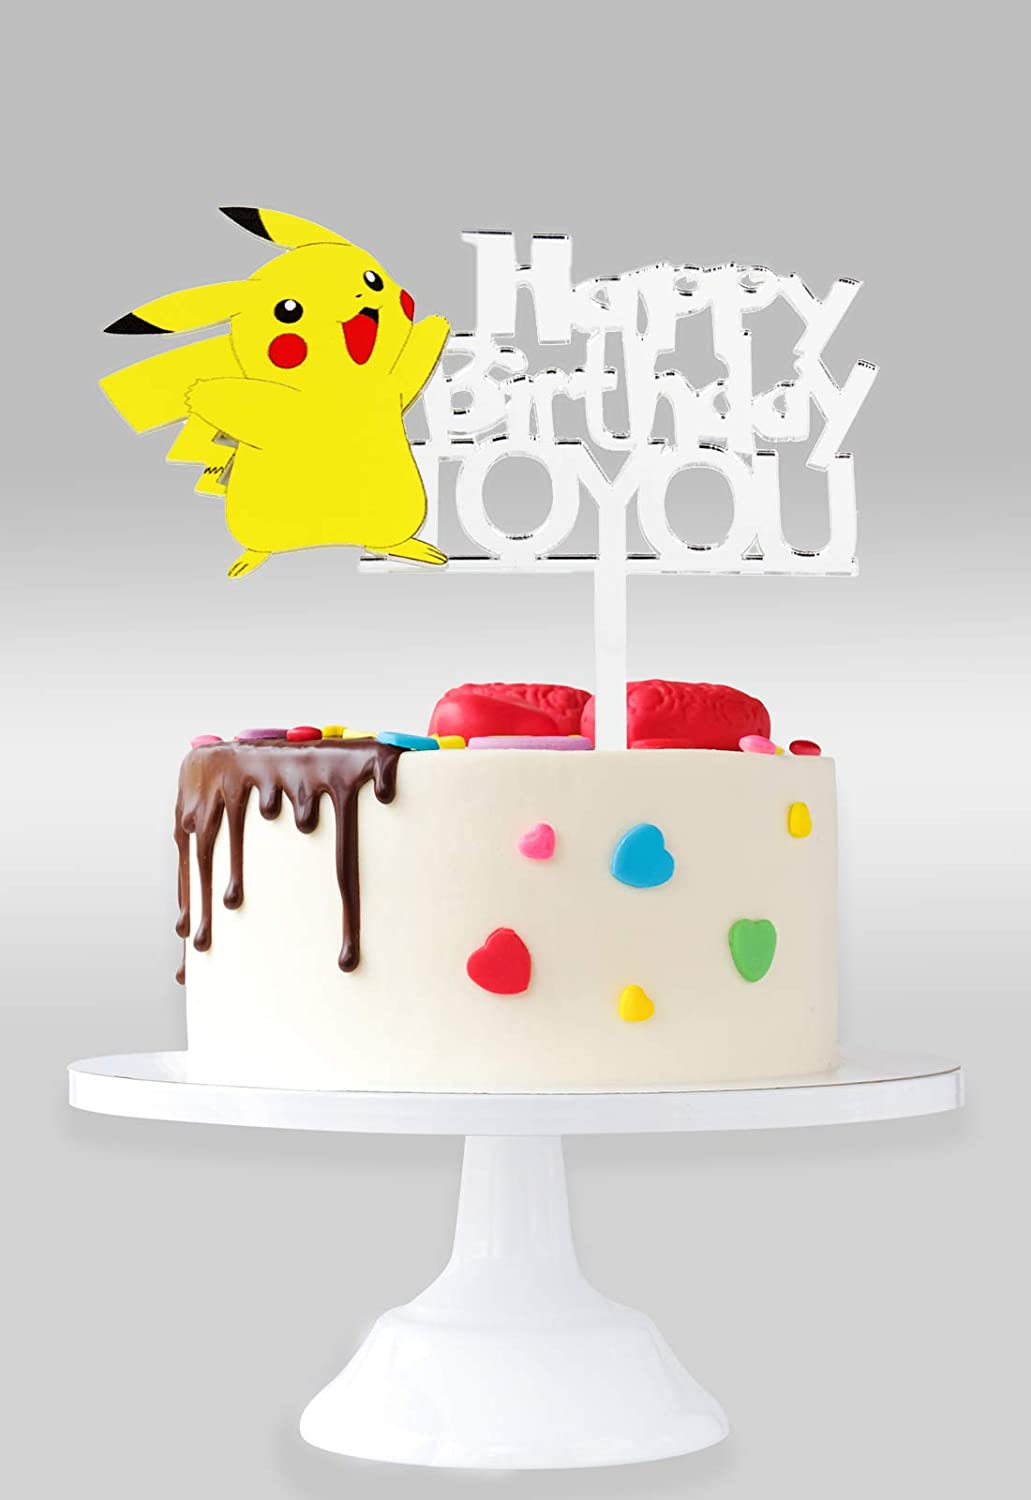 Pikachu Happy Birthday To You Cake Topper - Pokeman Go Theme Party Décor - Silver Mirrored Acrylic Baby Shower Child Birthday Party Supplies Decoration